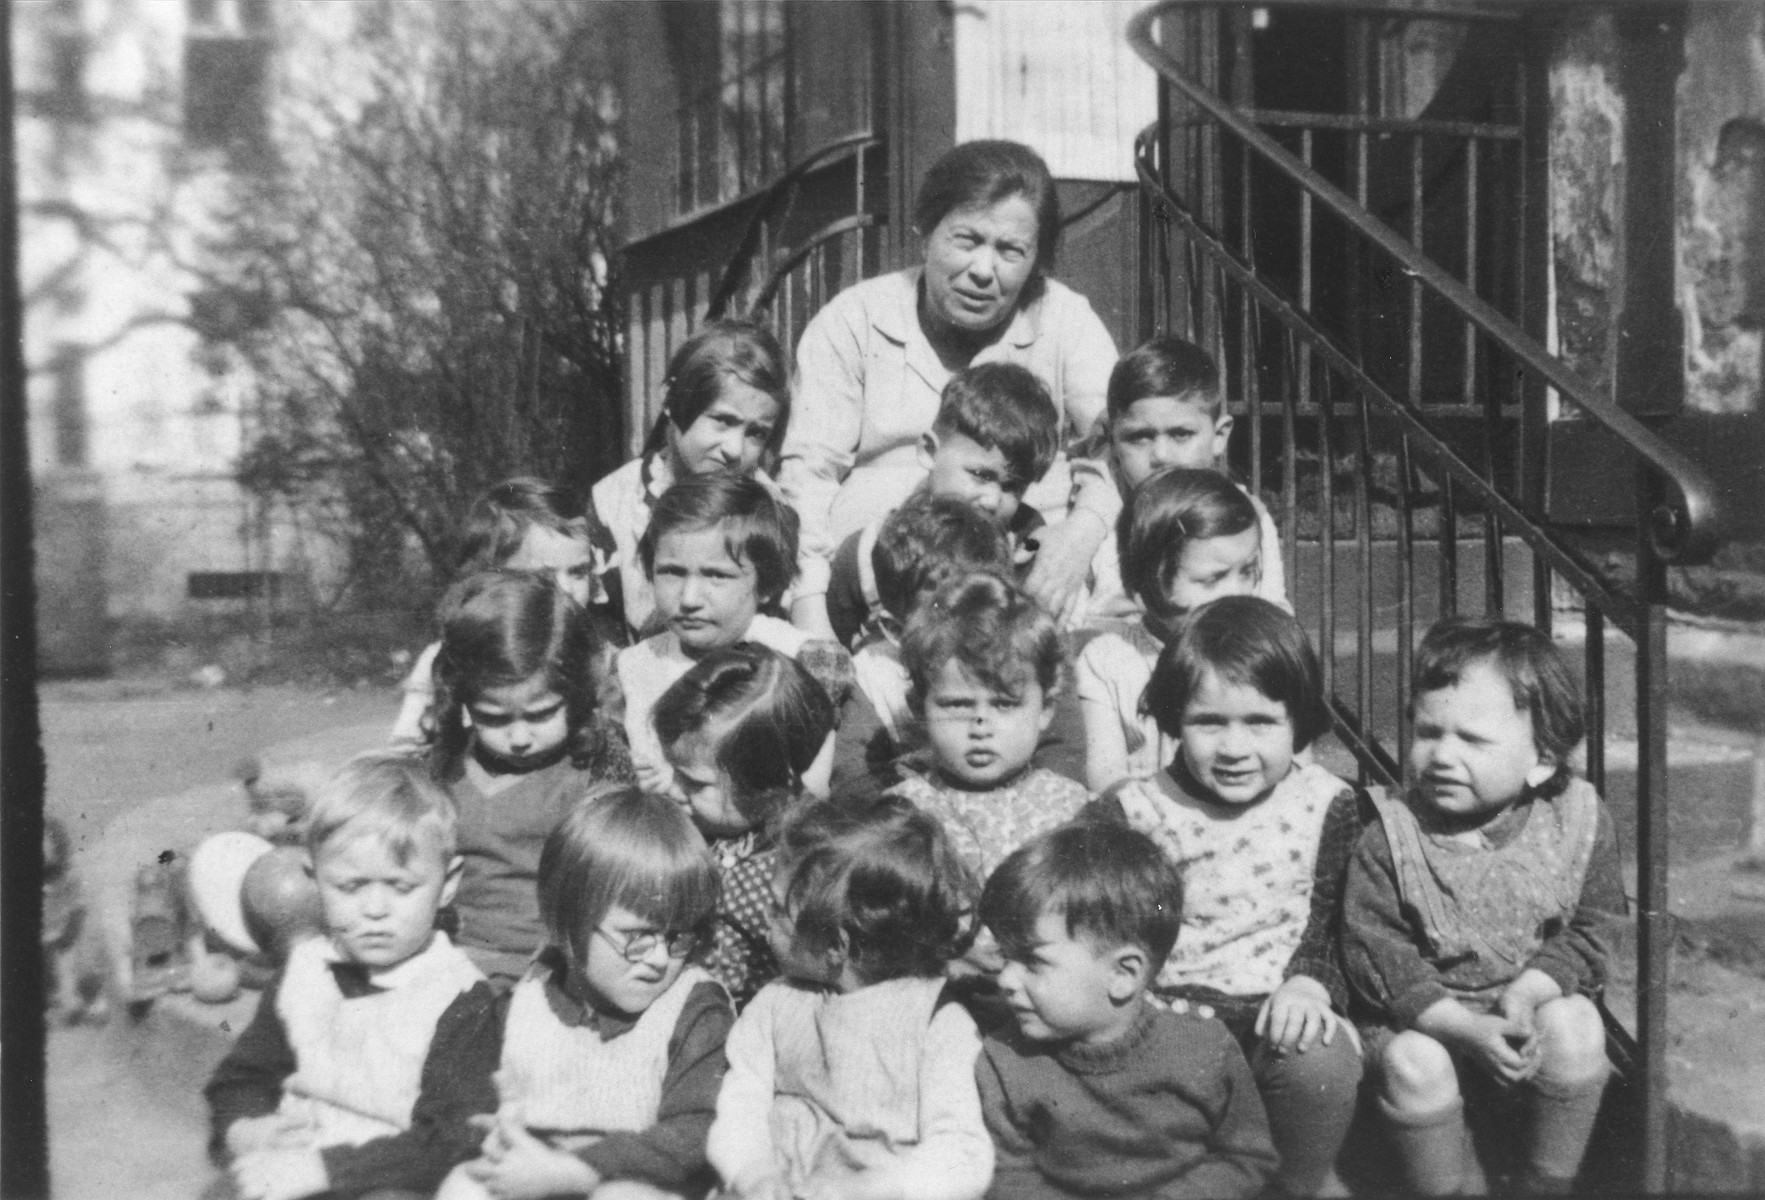 Group portrait of Jewish children at a preschool in Frankfurt am Main.  Among those pictured is Sonja Kaiser (second row from the front, on the far left).